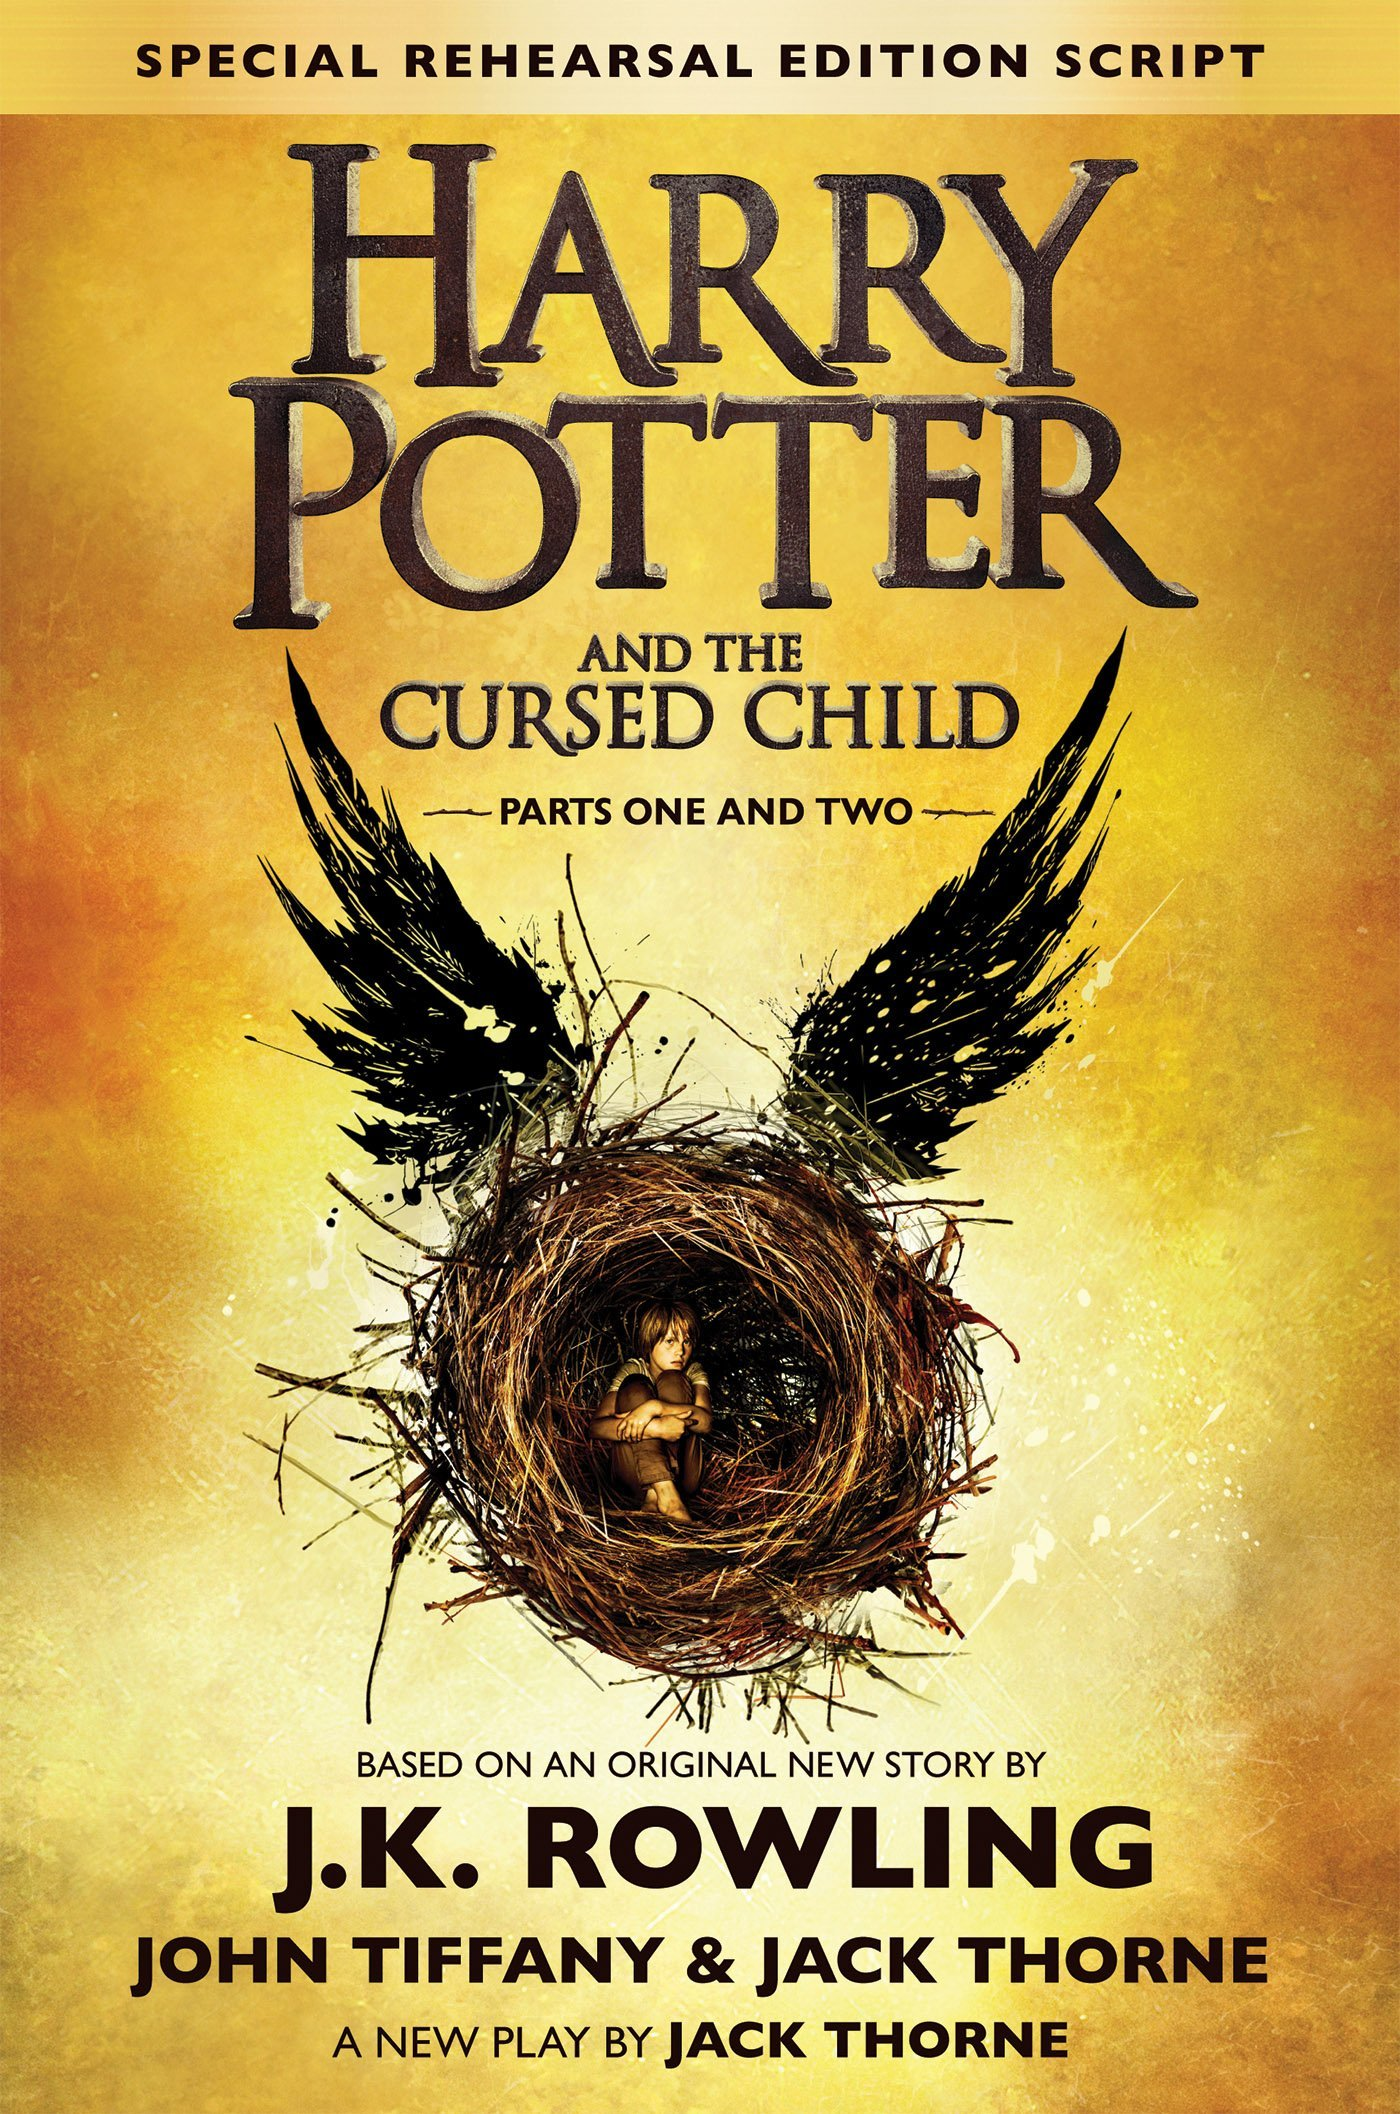 Harry Potter and the Cursed Child - Parts One and Two (Harry Potter, #8) by J.K. Rowling, John Tiffany, Jack Thorne